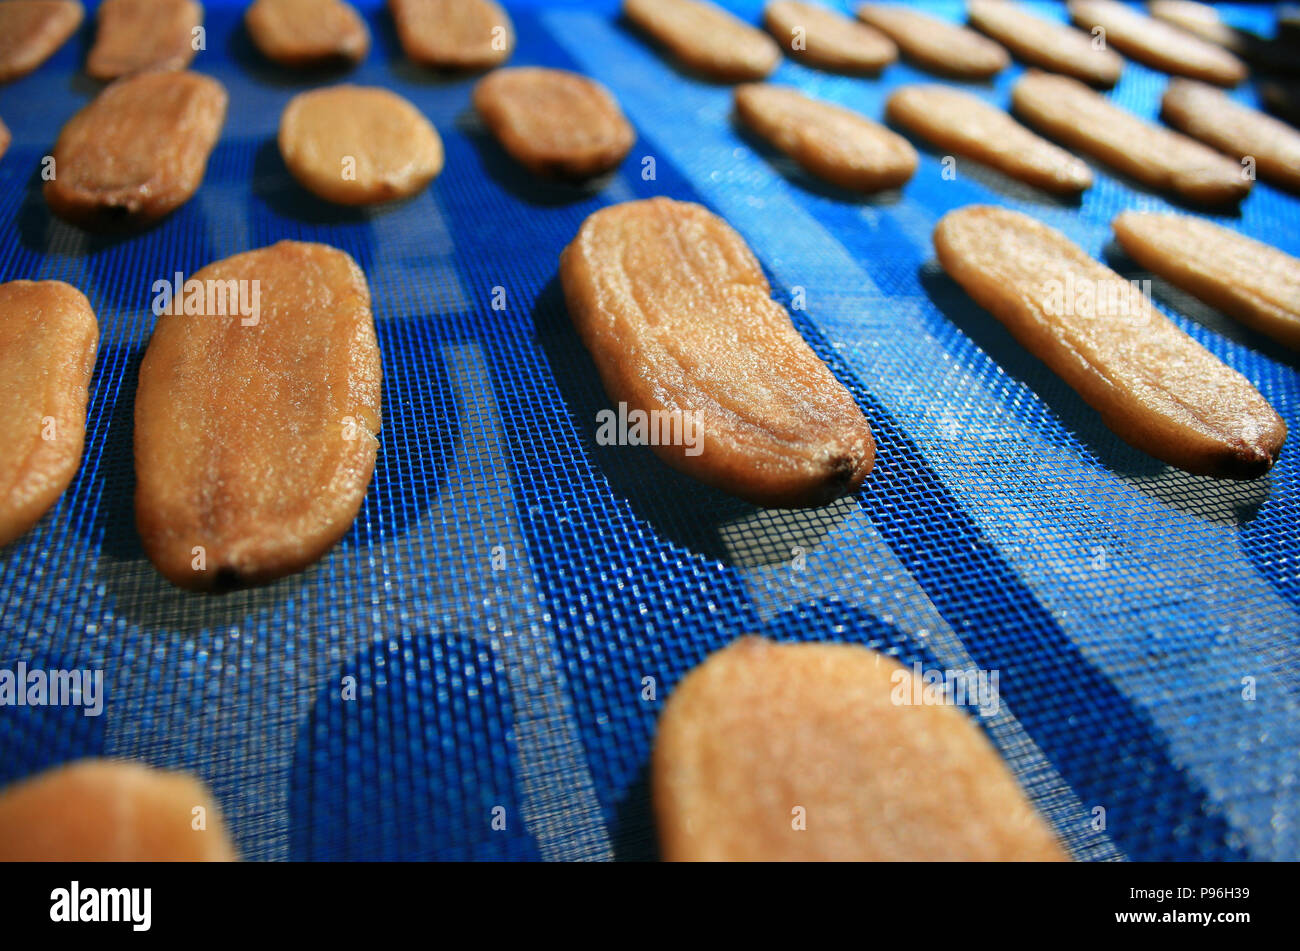 Dried banana on blue mesh, Dried fruit Stock Photo